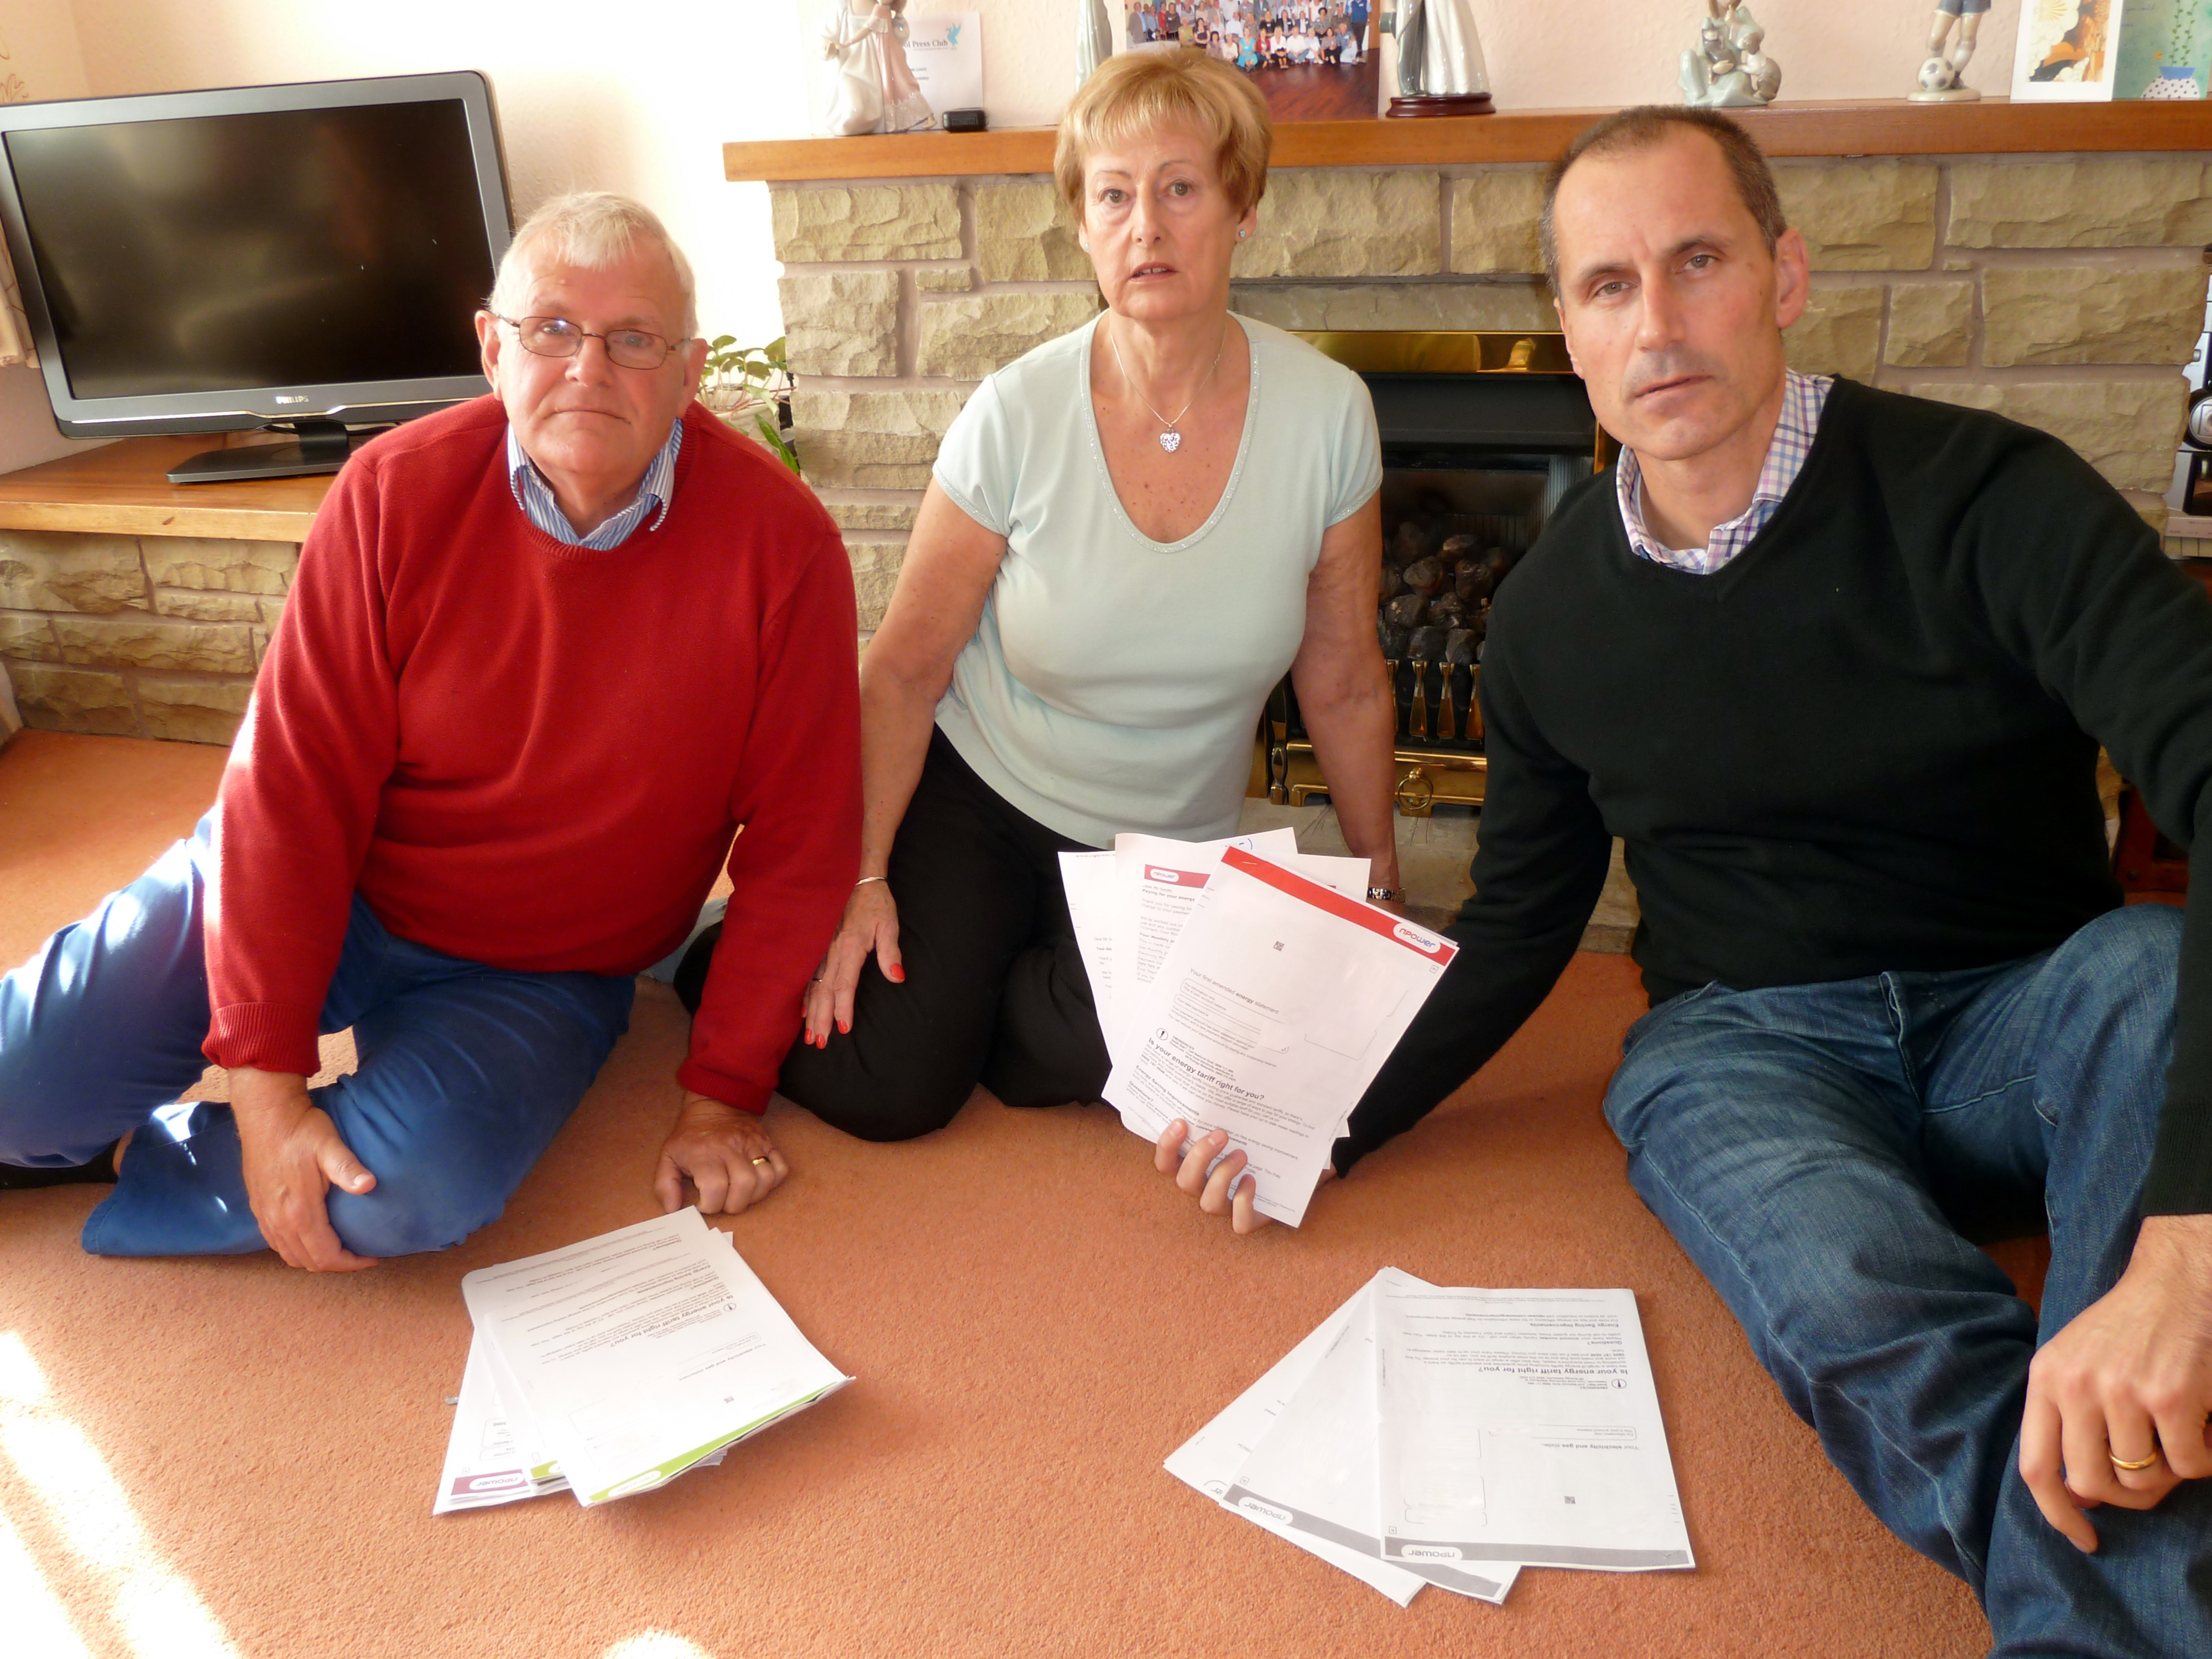 Sefton Central Labour MP Bill Esterson with Jeanette and Mike Smith